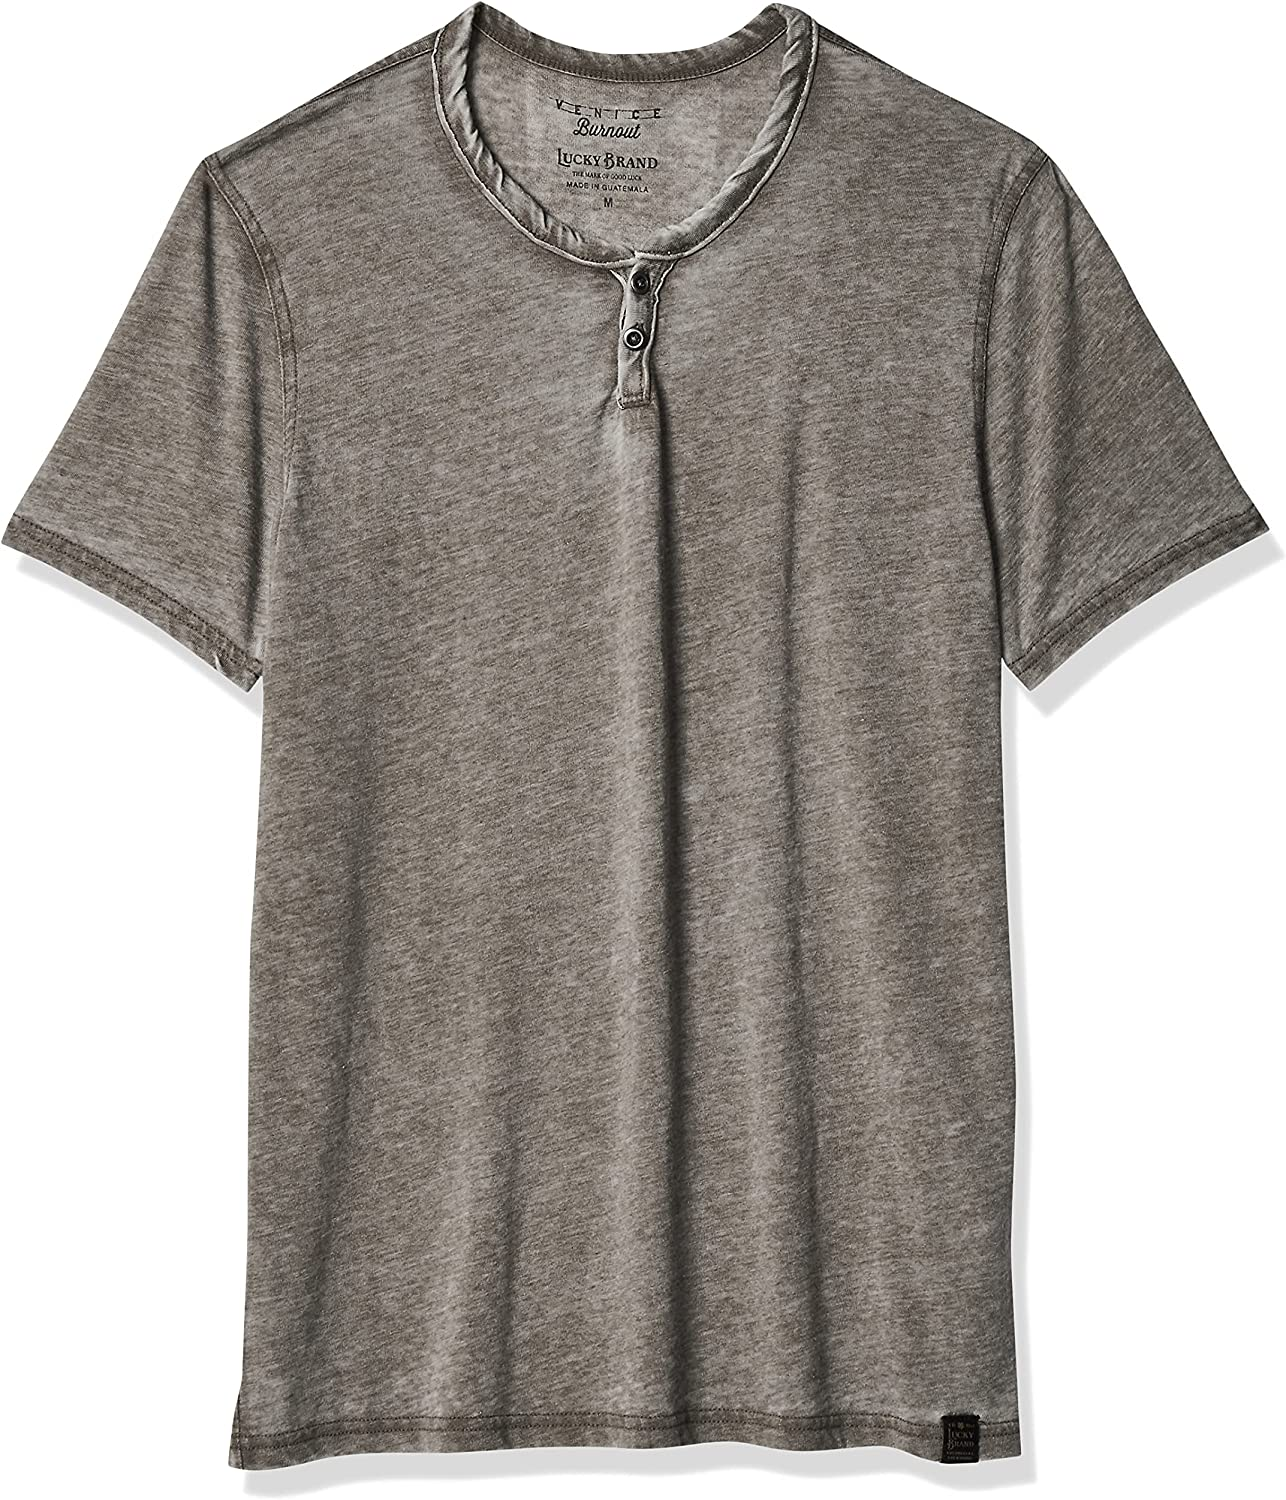 Lucky Brand Men's Max 61% OFF Venice Burnout Neck Tee Shirt Notch Easy-to-use